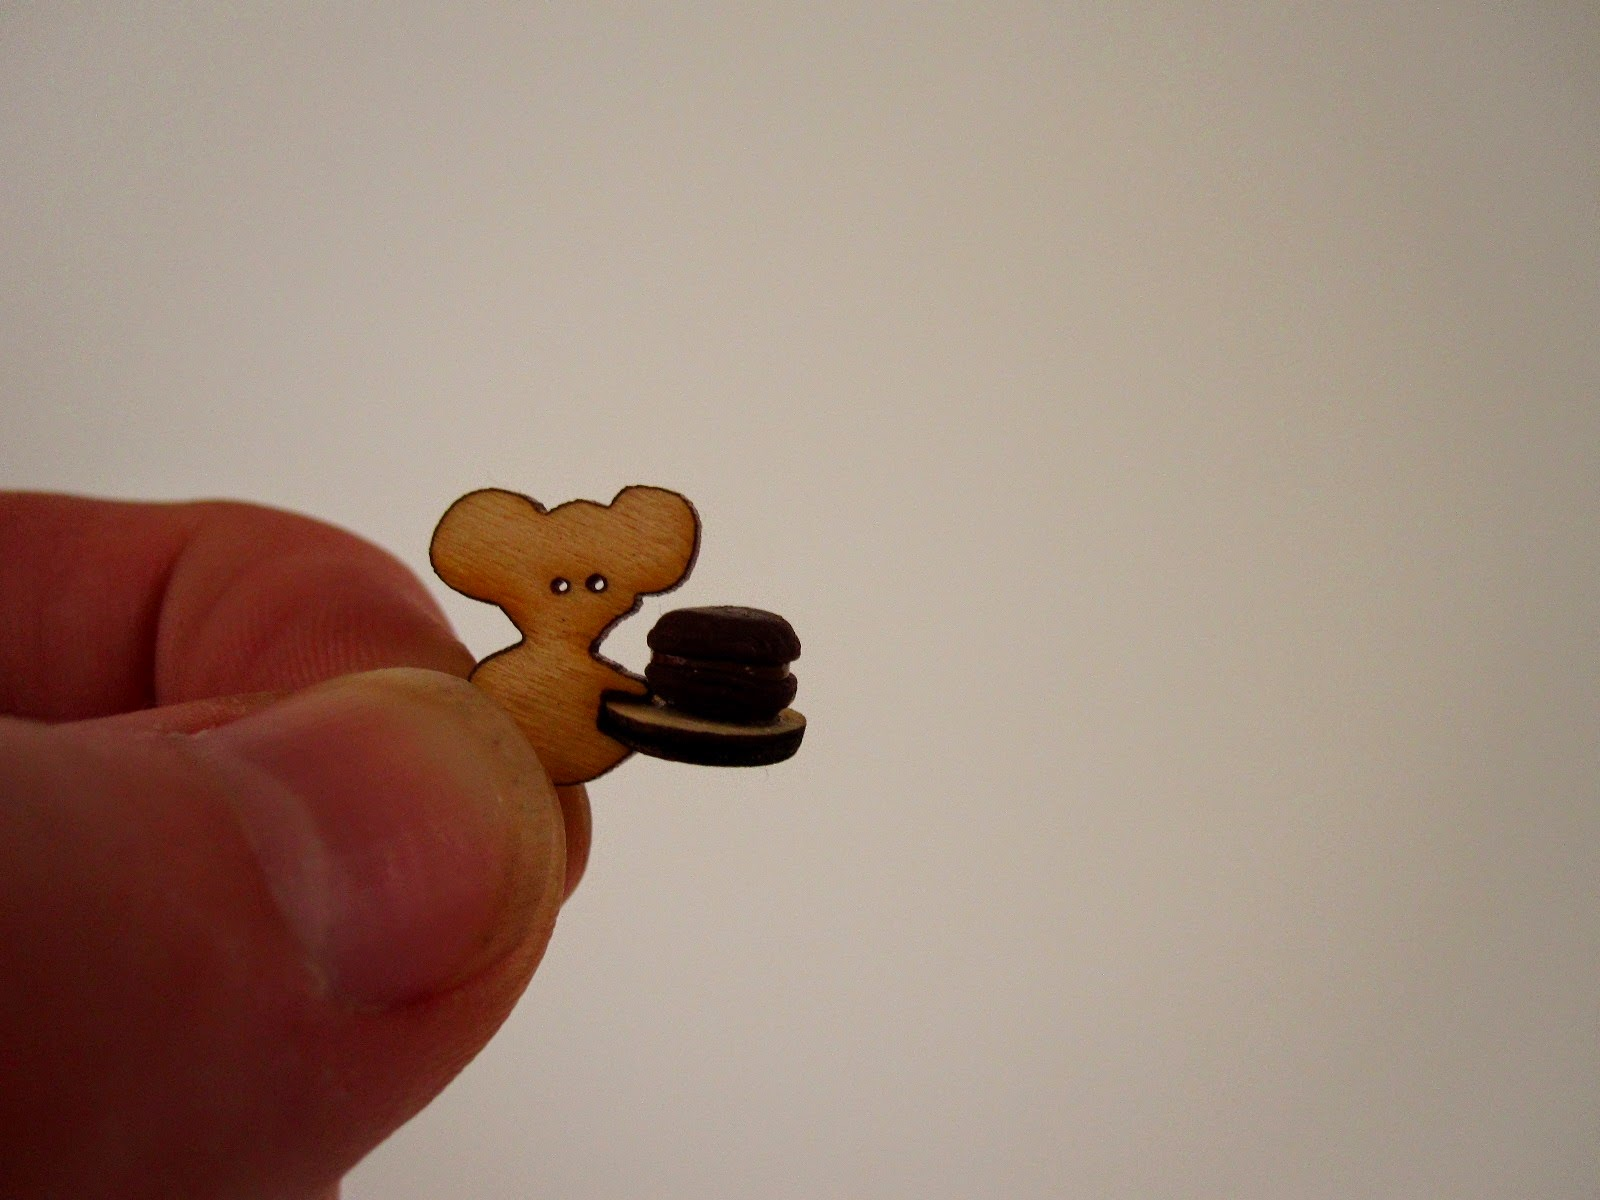 A tiny laser-cut wooden koala, holding a tray with a miniature macaron on it.